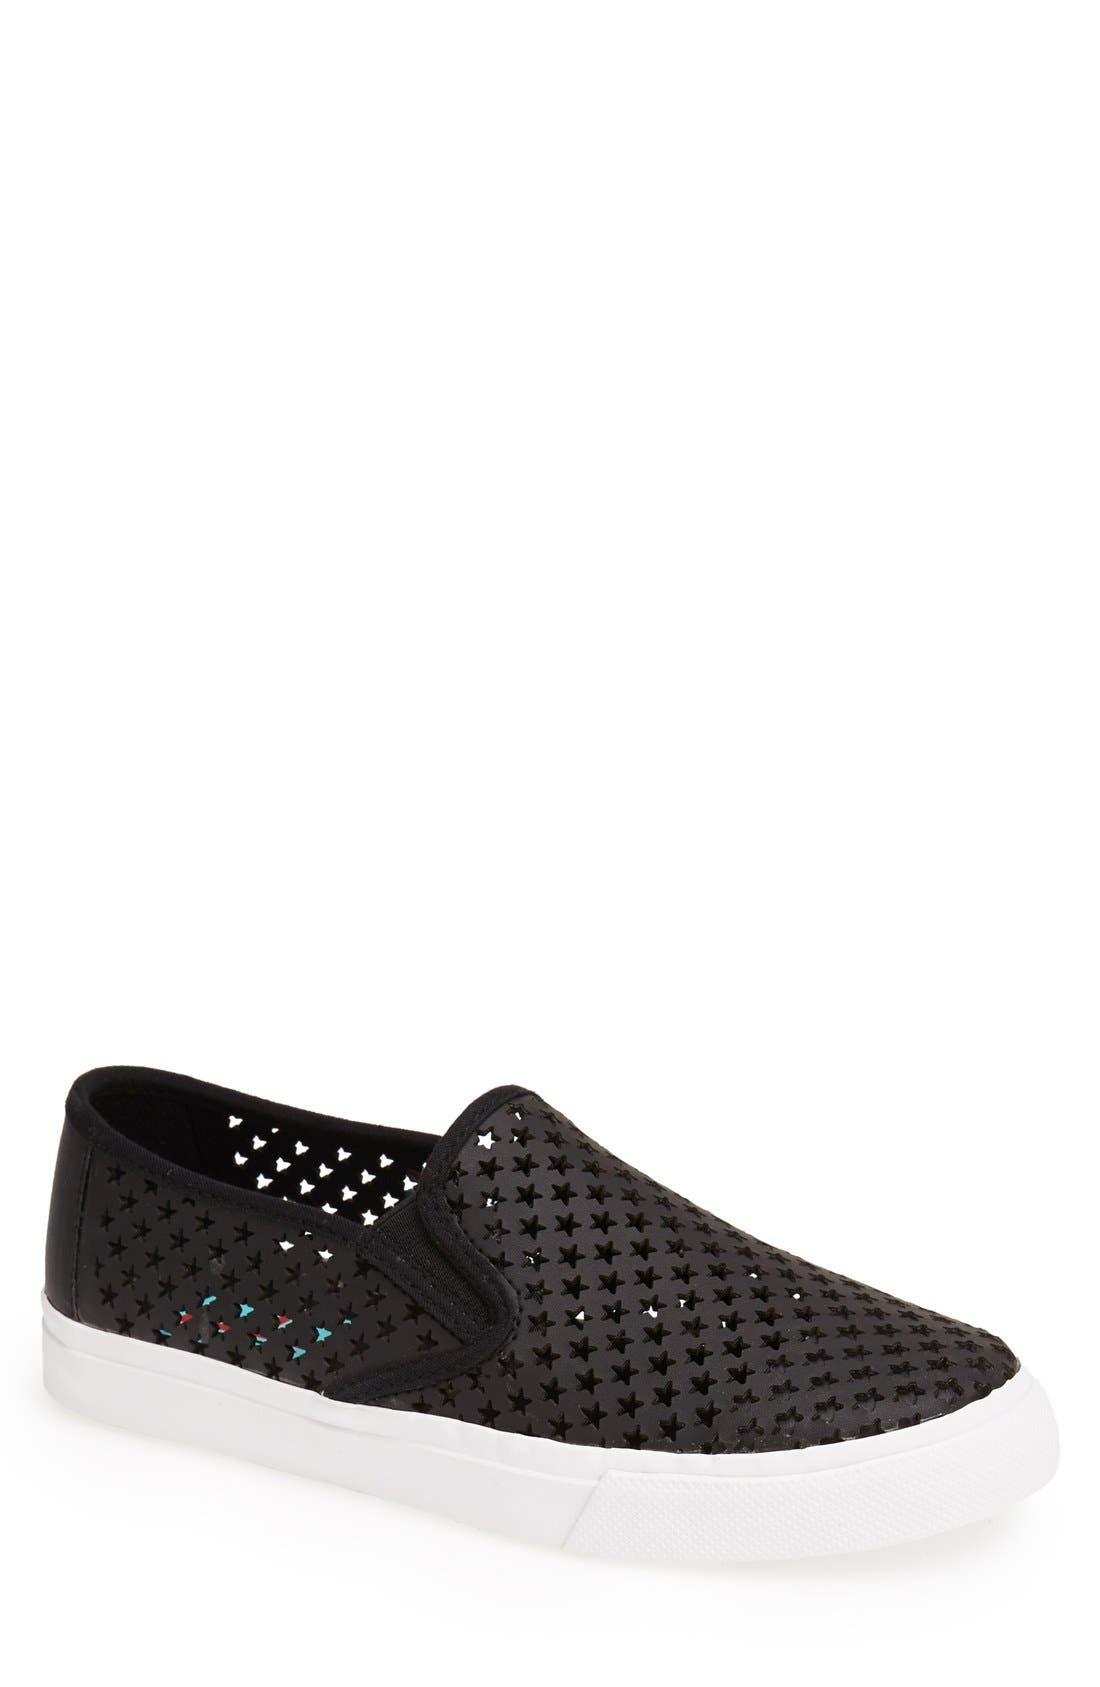 Alternate Image 1 Selected - Jeffrey Campbell 'Ray-Star' Sneaker